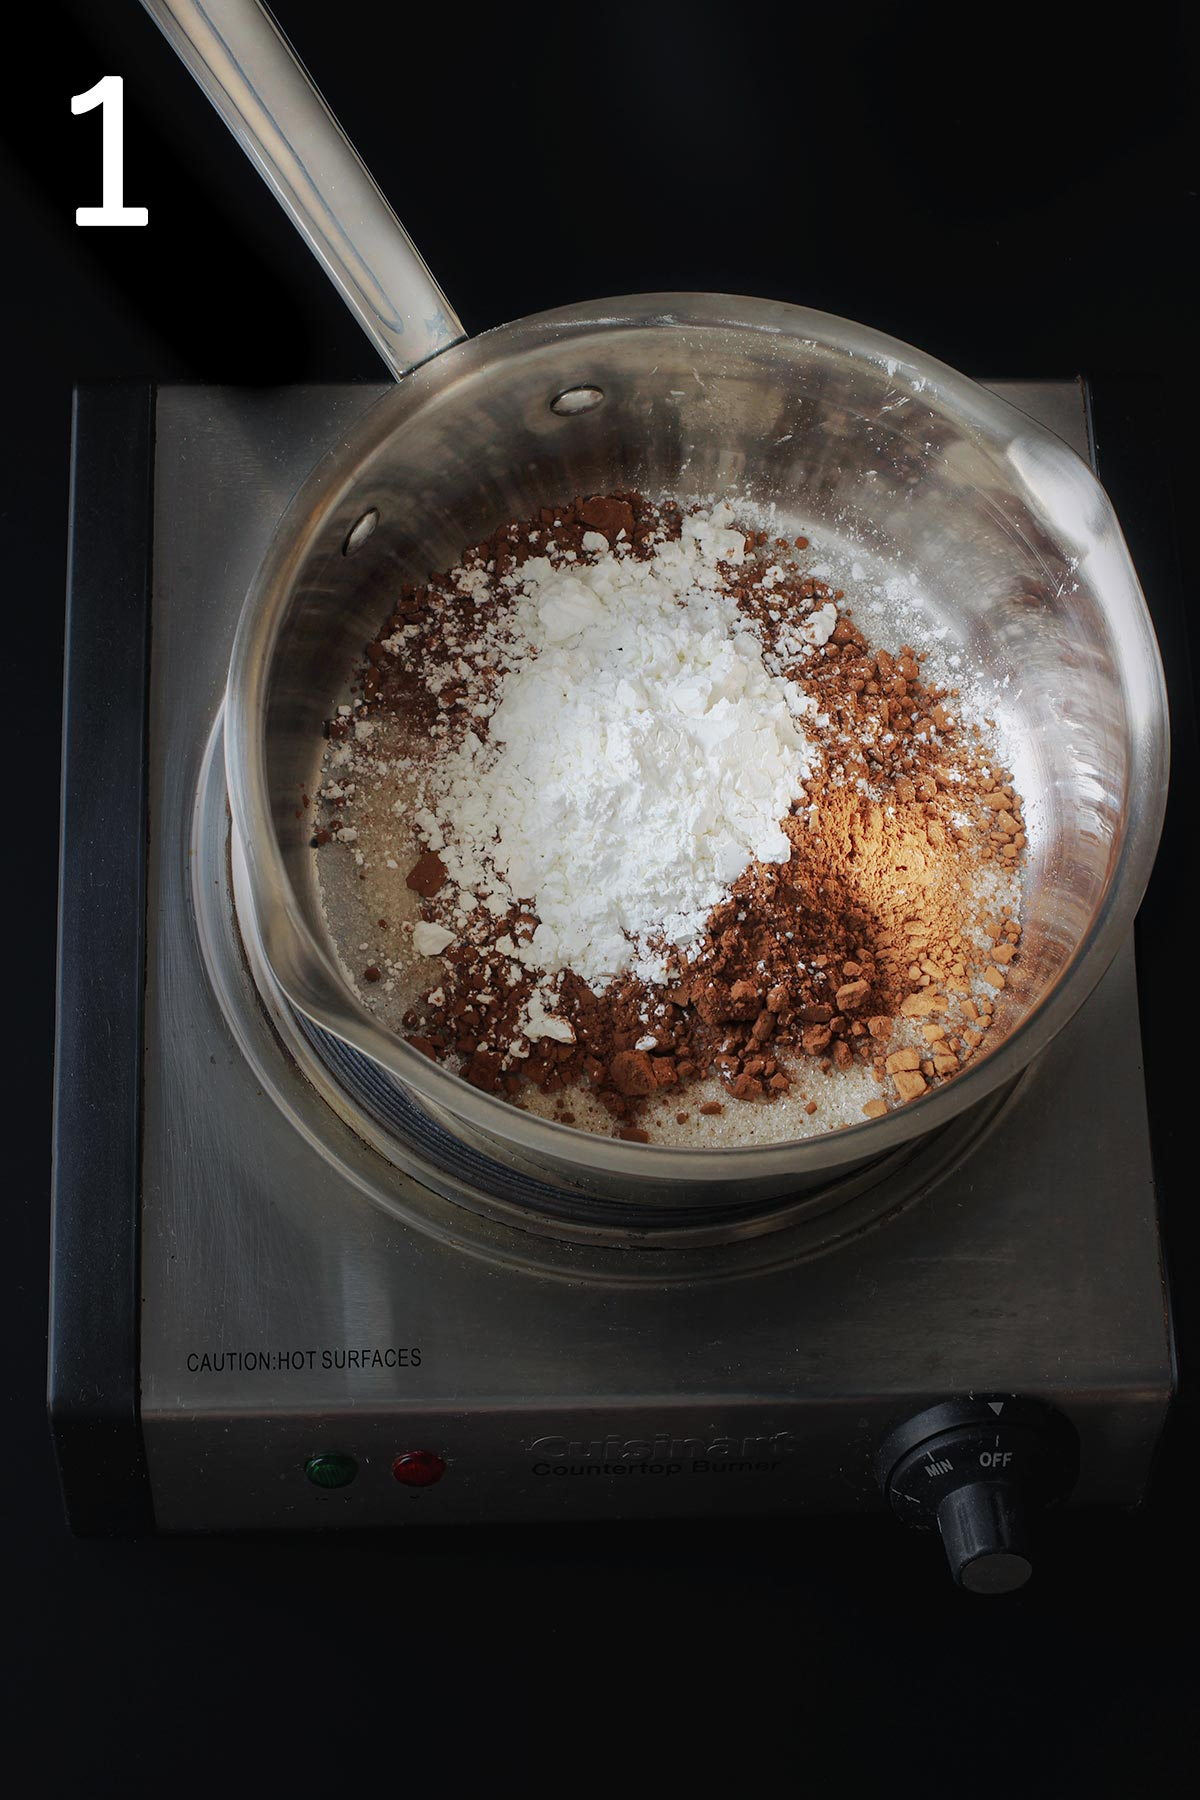 dry ingredients for pudding in a 4-quart sauce pan.